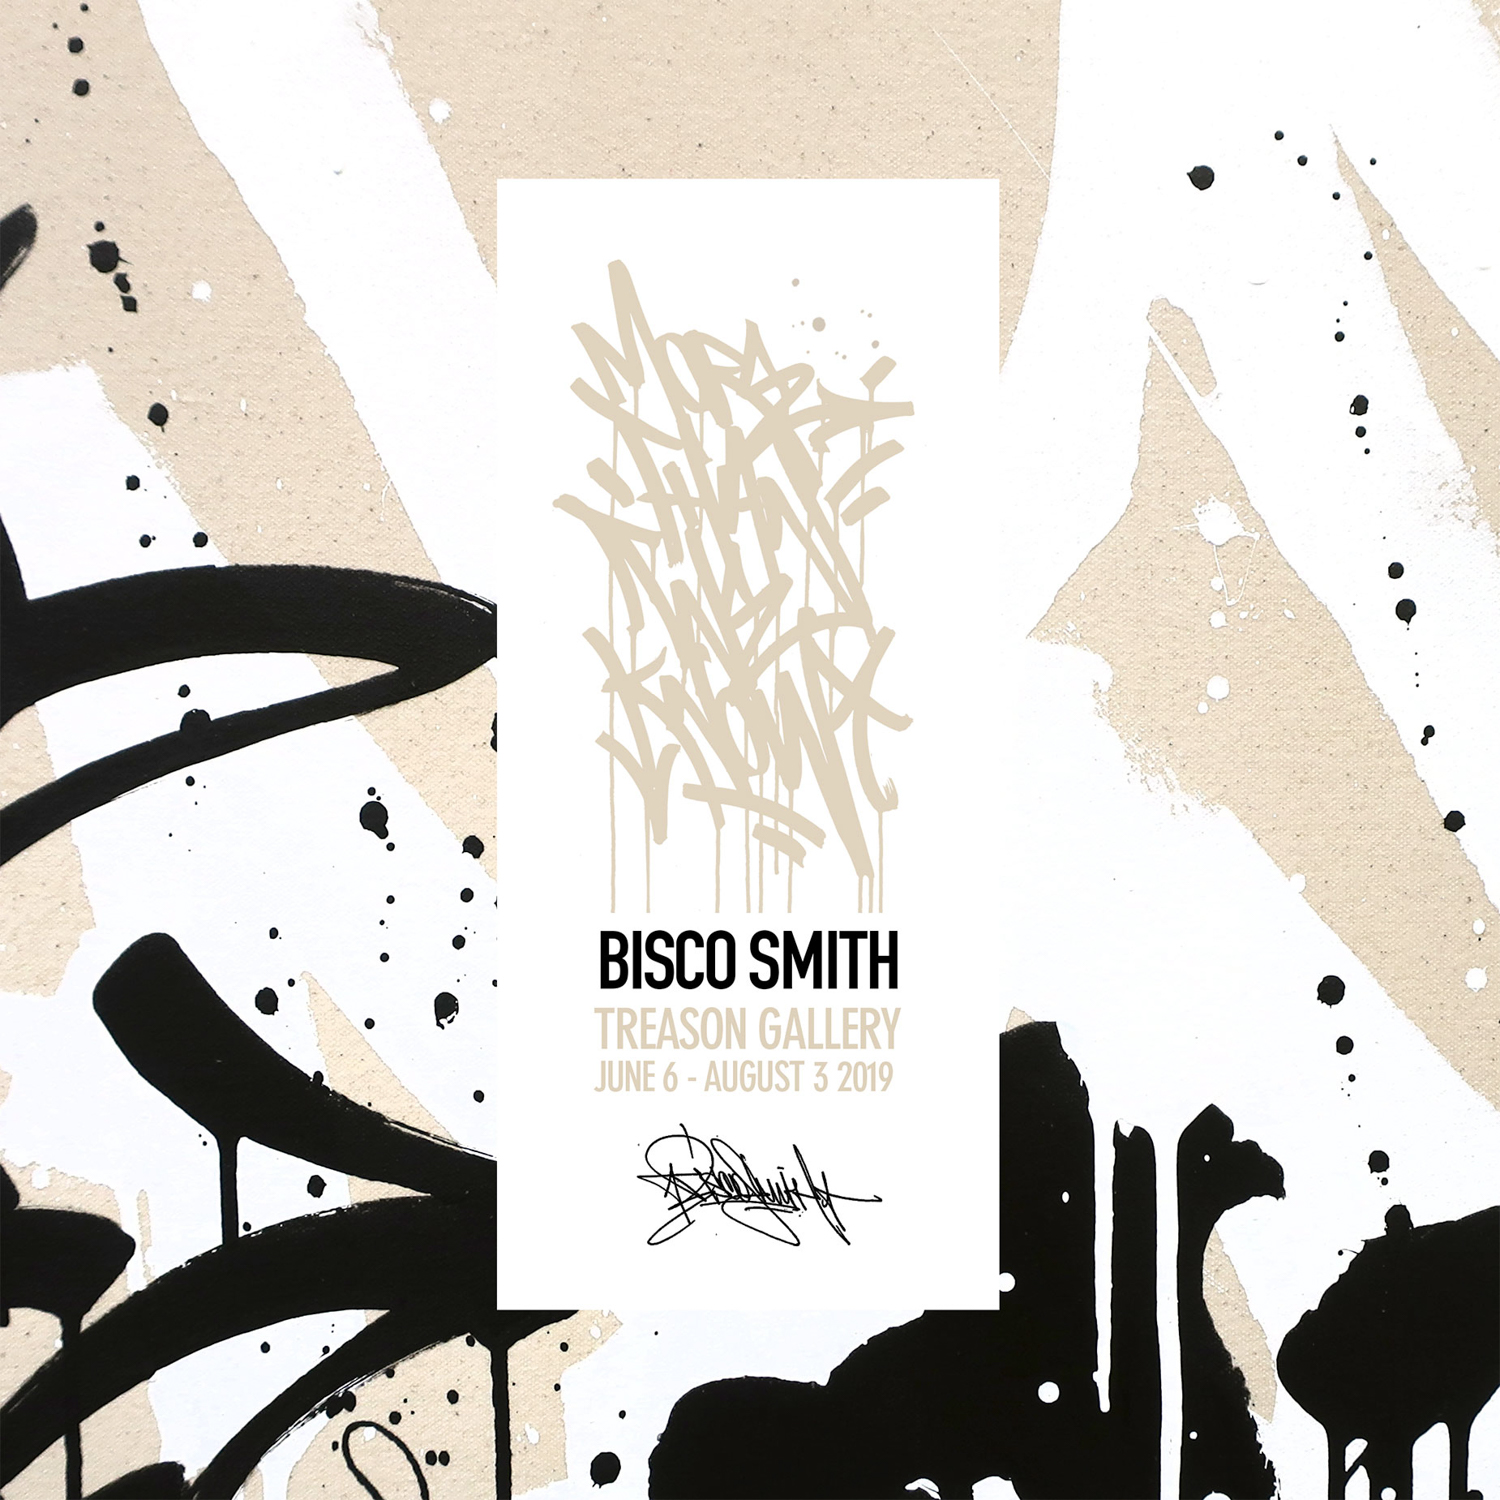 Copy of Bisco Smith - MORE THAN WE KNOW